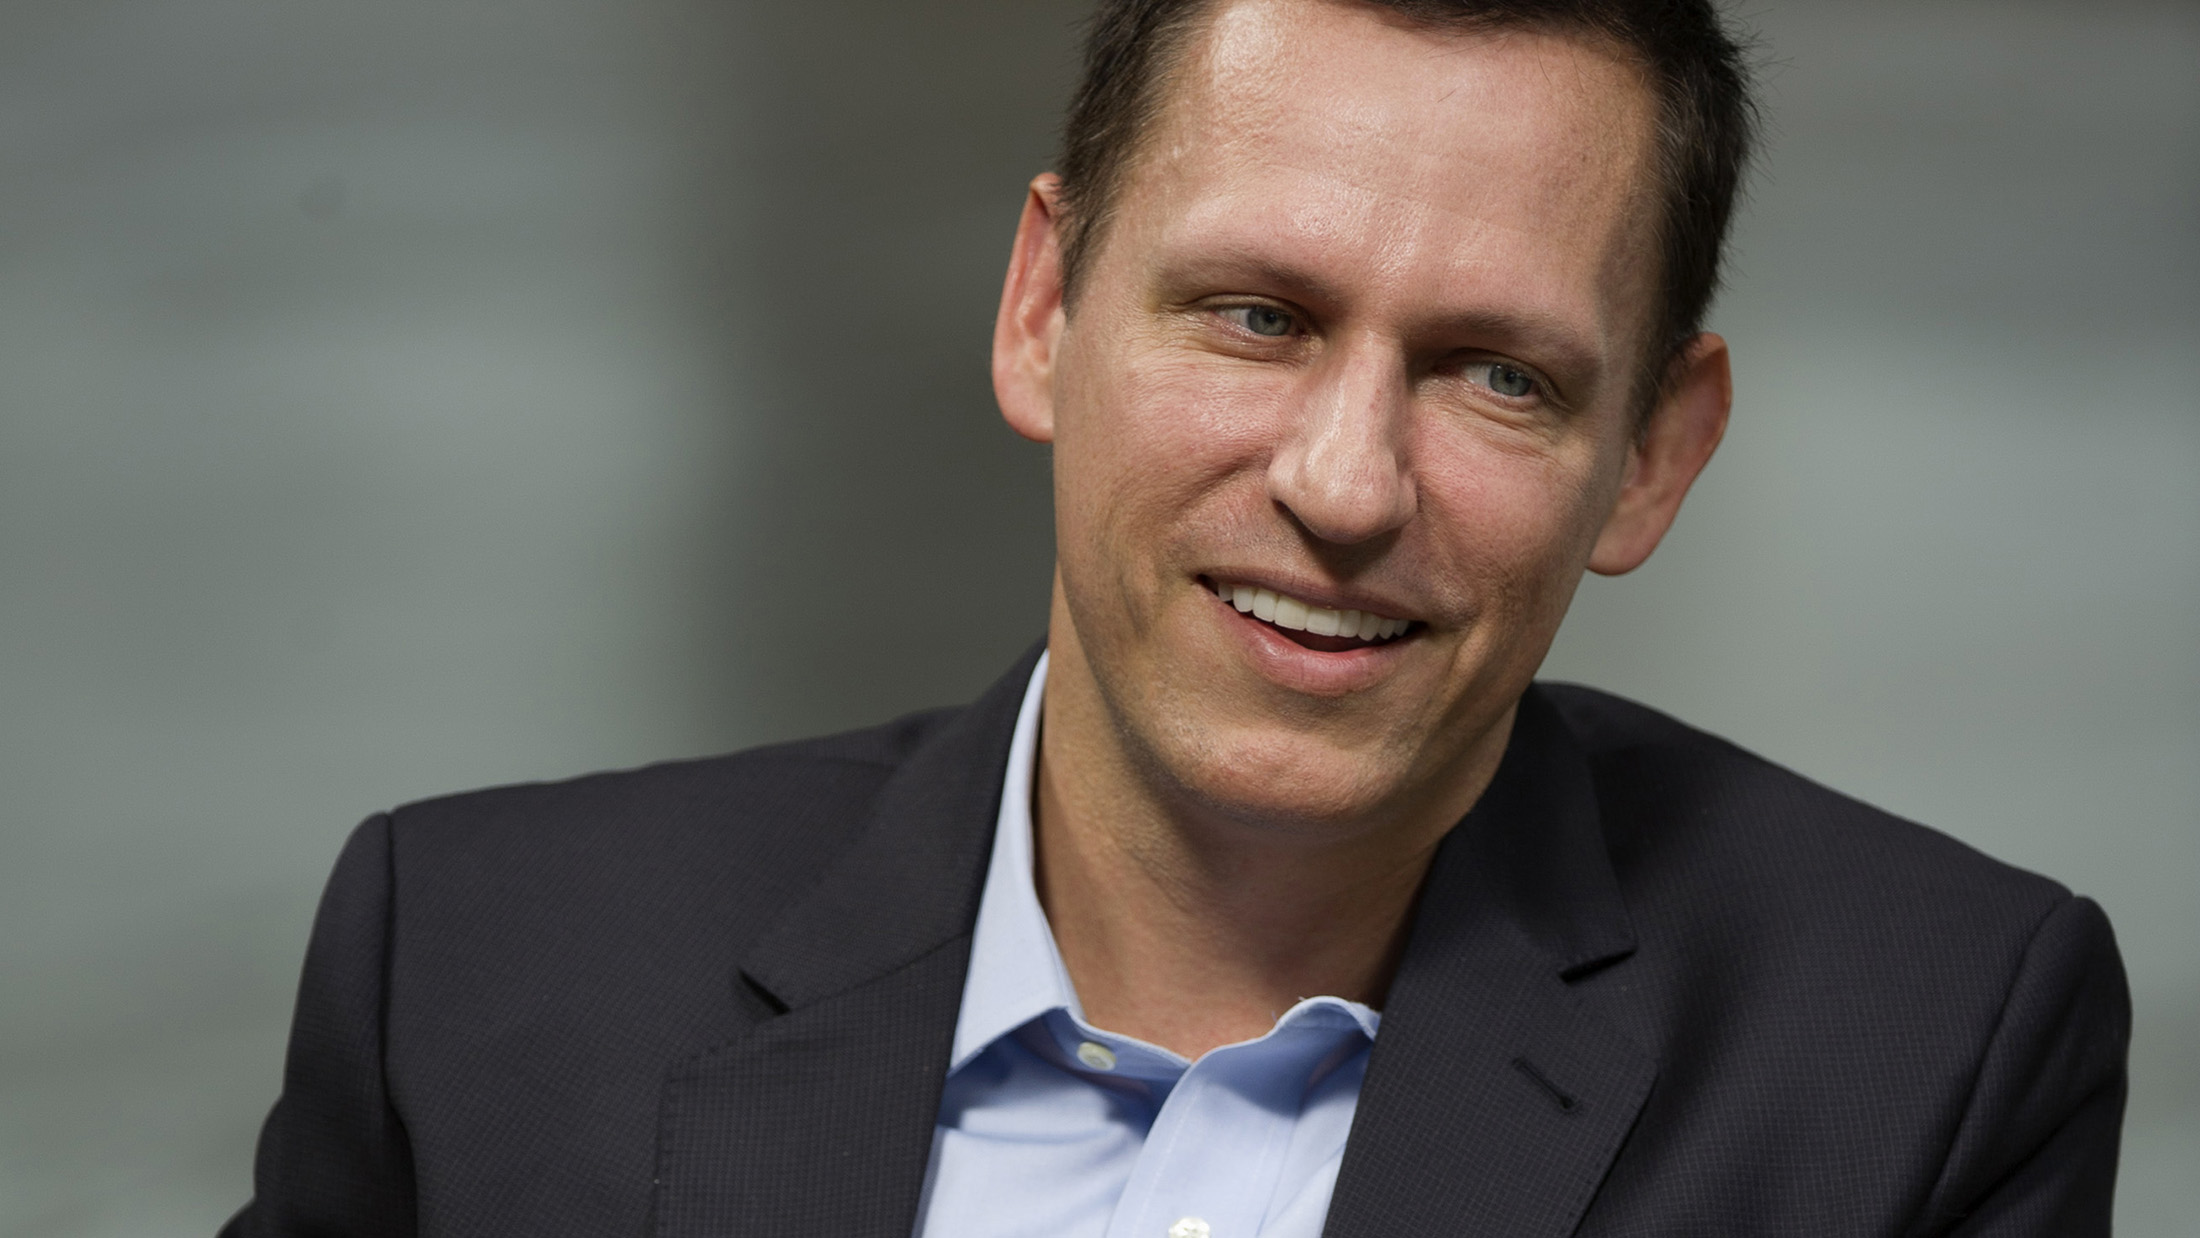 At Peter Thiel's Palantir, Allegations of Theft and